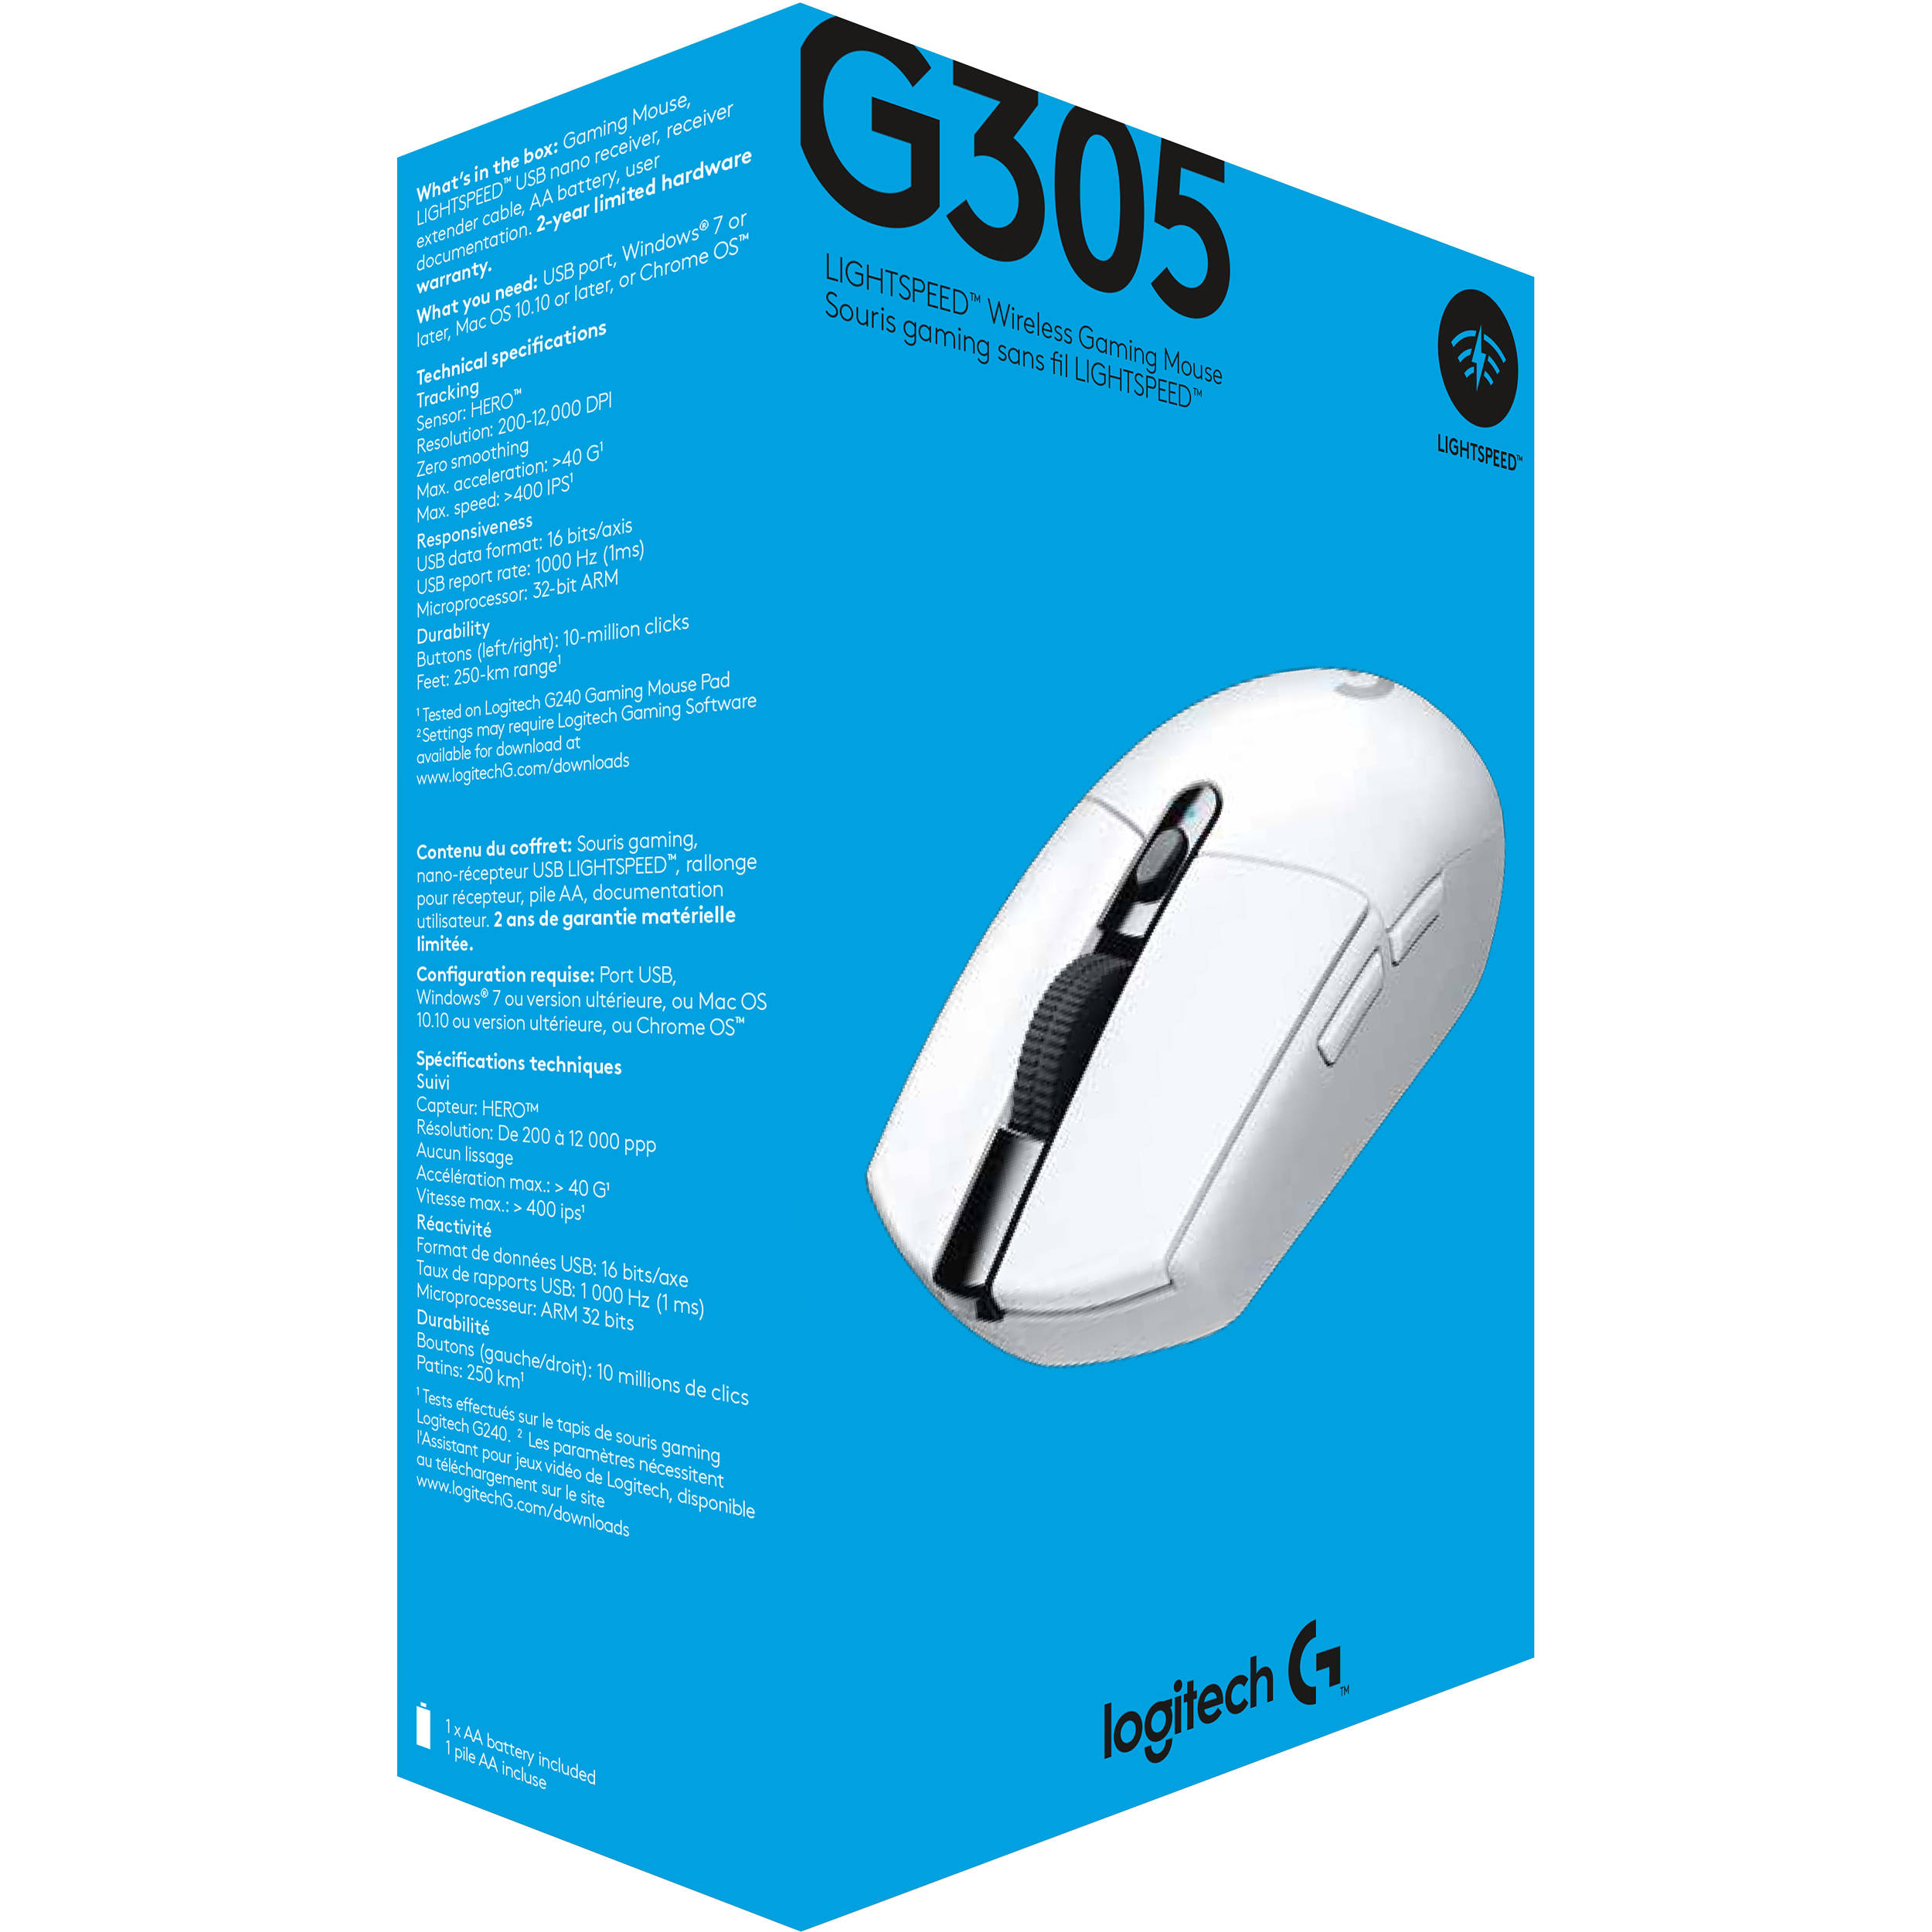 Logitech G305 LIGHTSPEED Wireless Mouse (White)